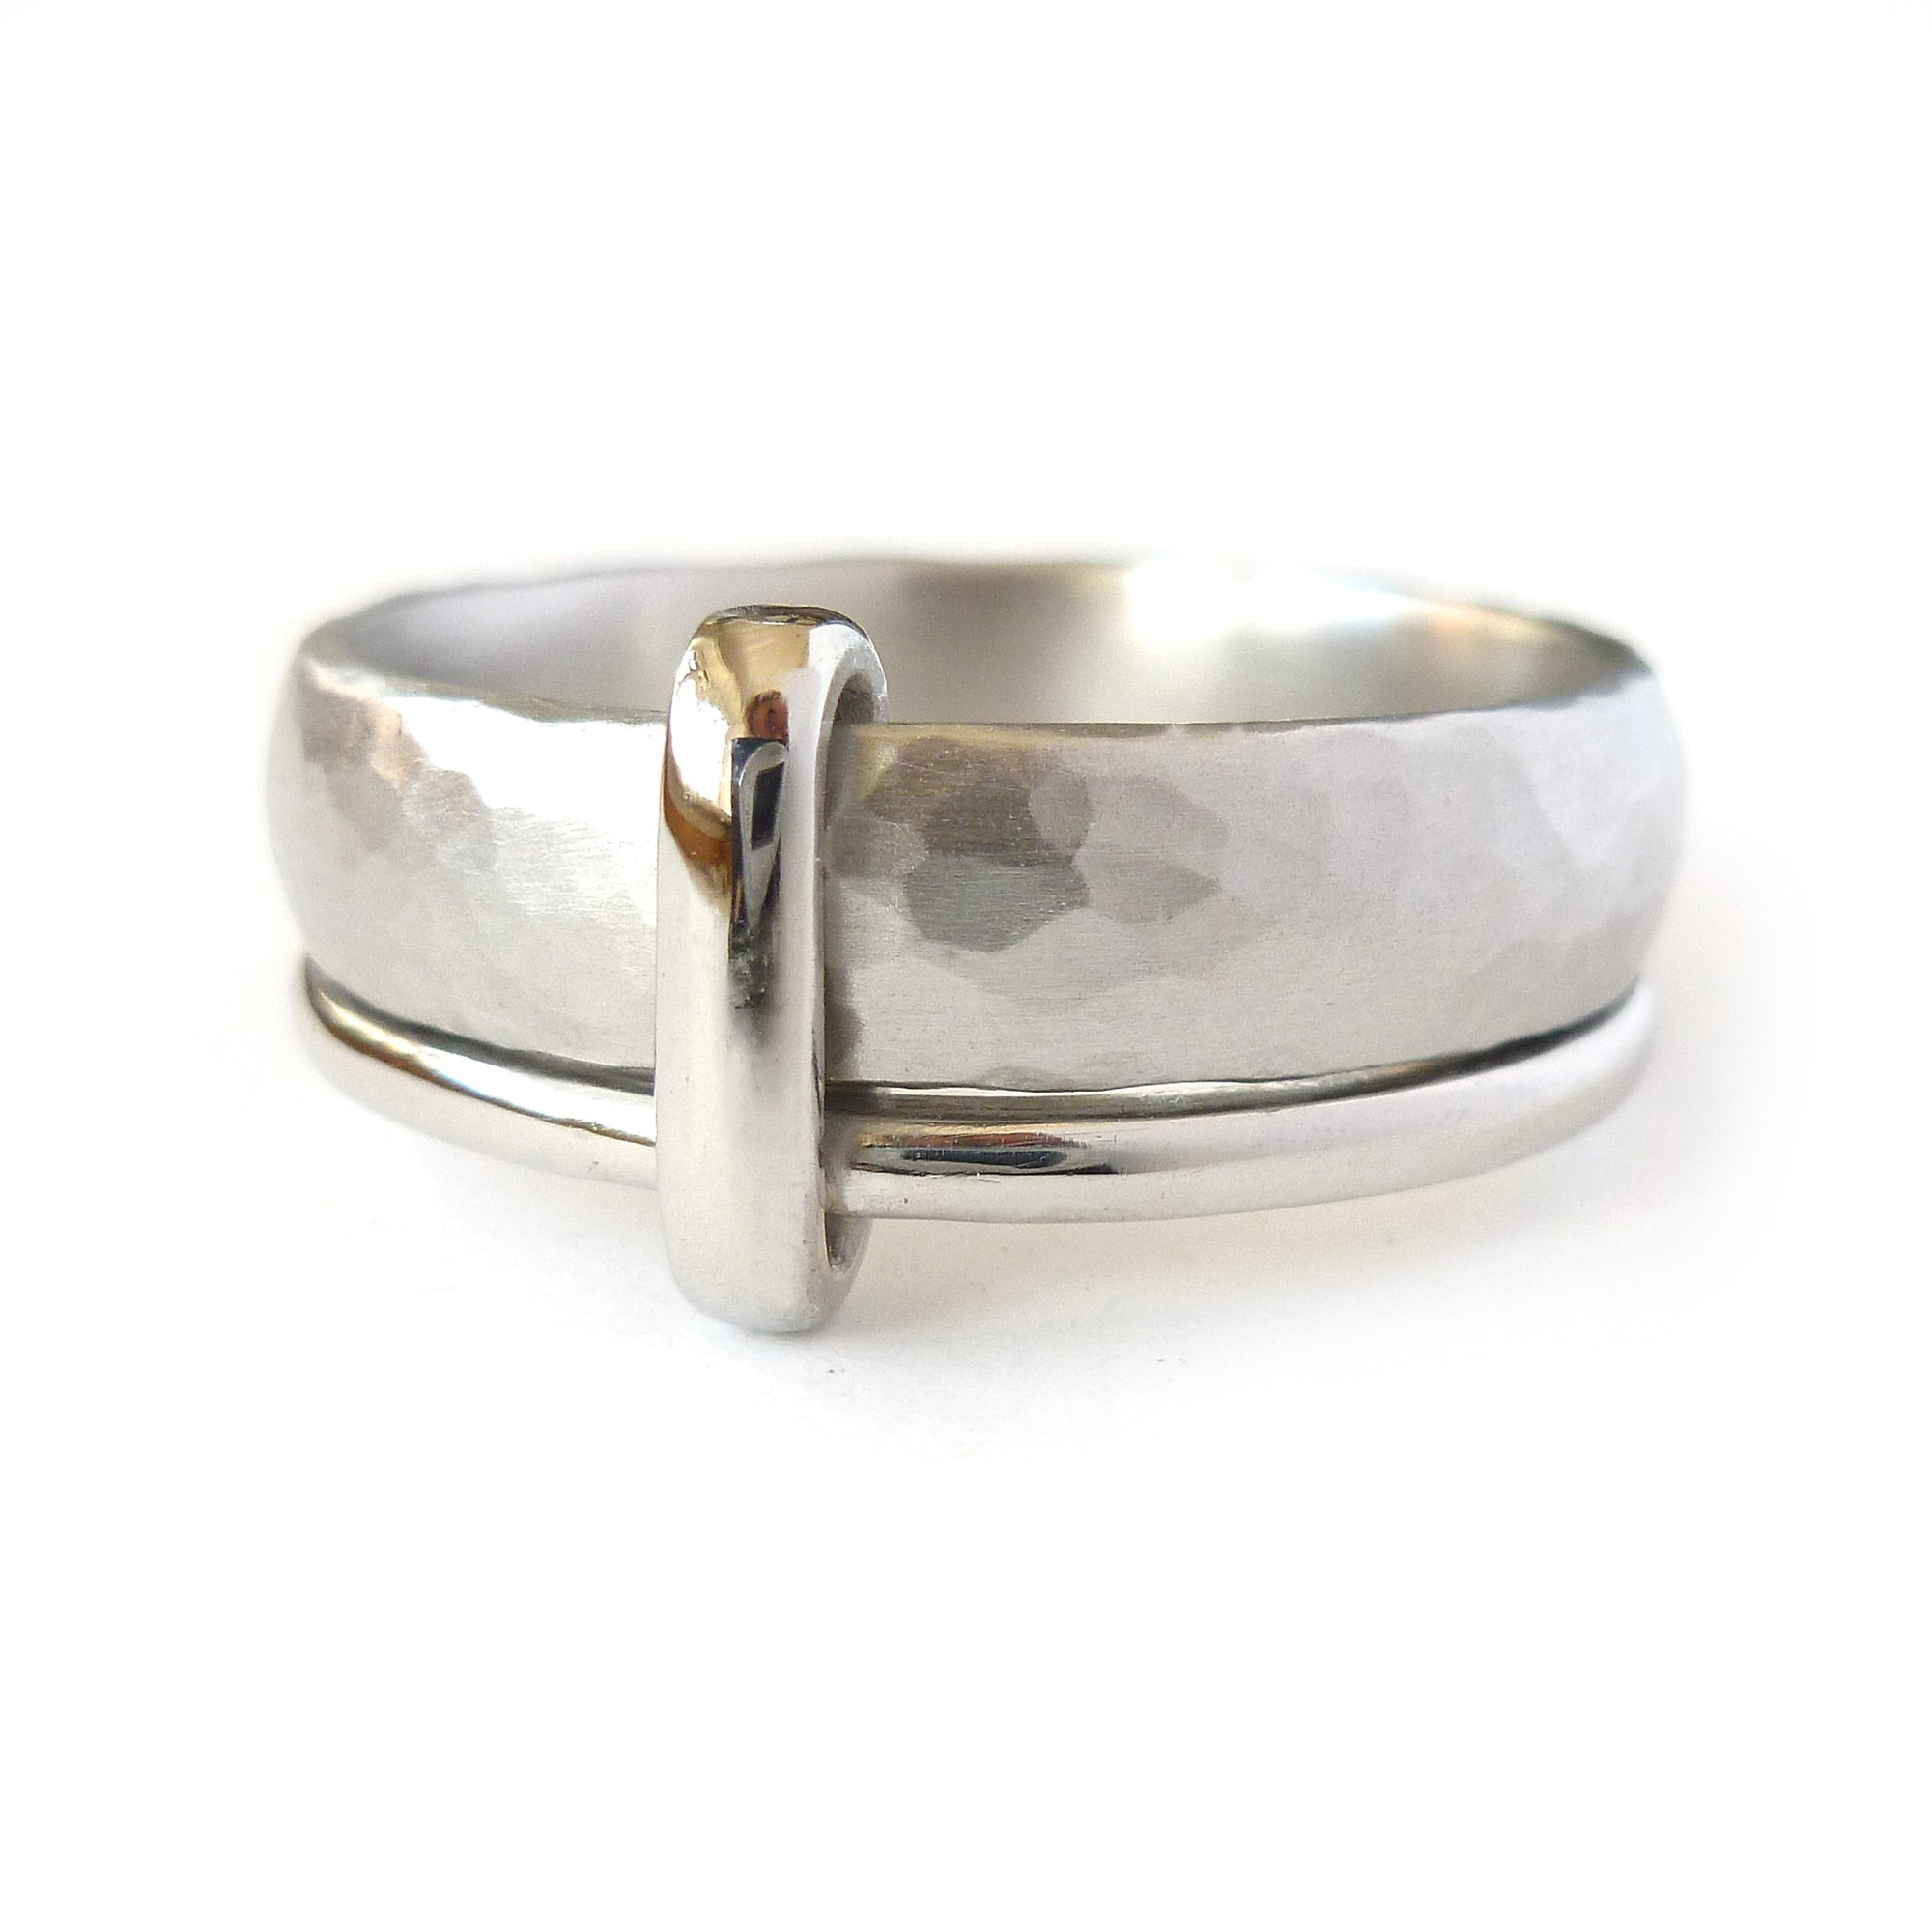 Contemporary, unique and modern platinum mens wedding ring or engagement ring, handmade by Sue Lane Jewellery. Bespoke ring can be made in different sizes.